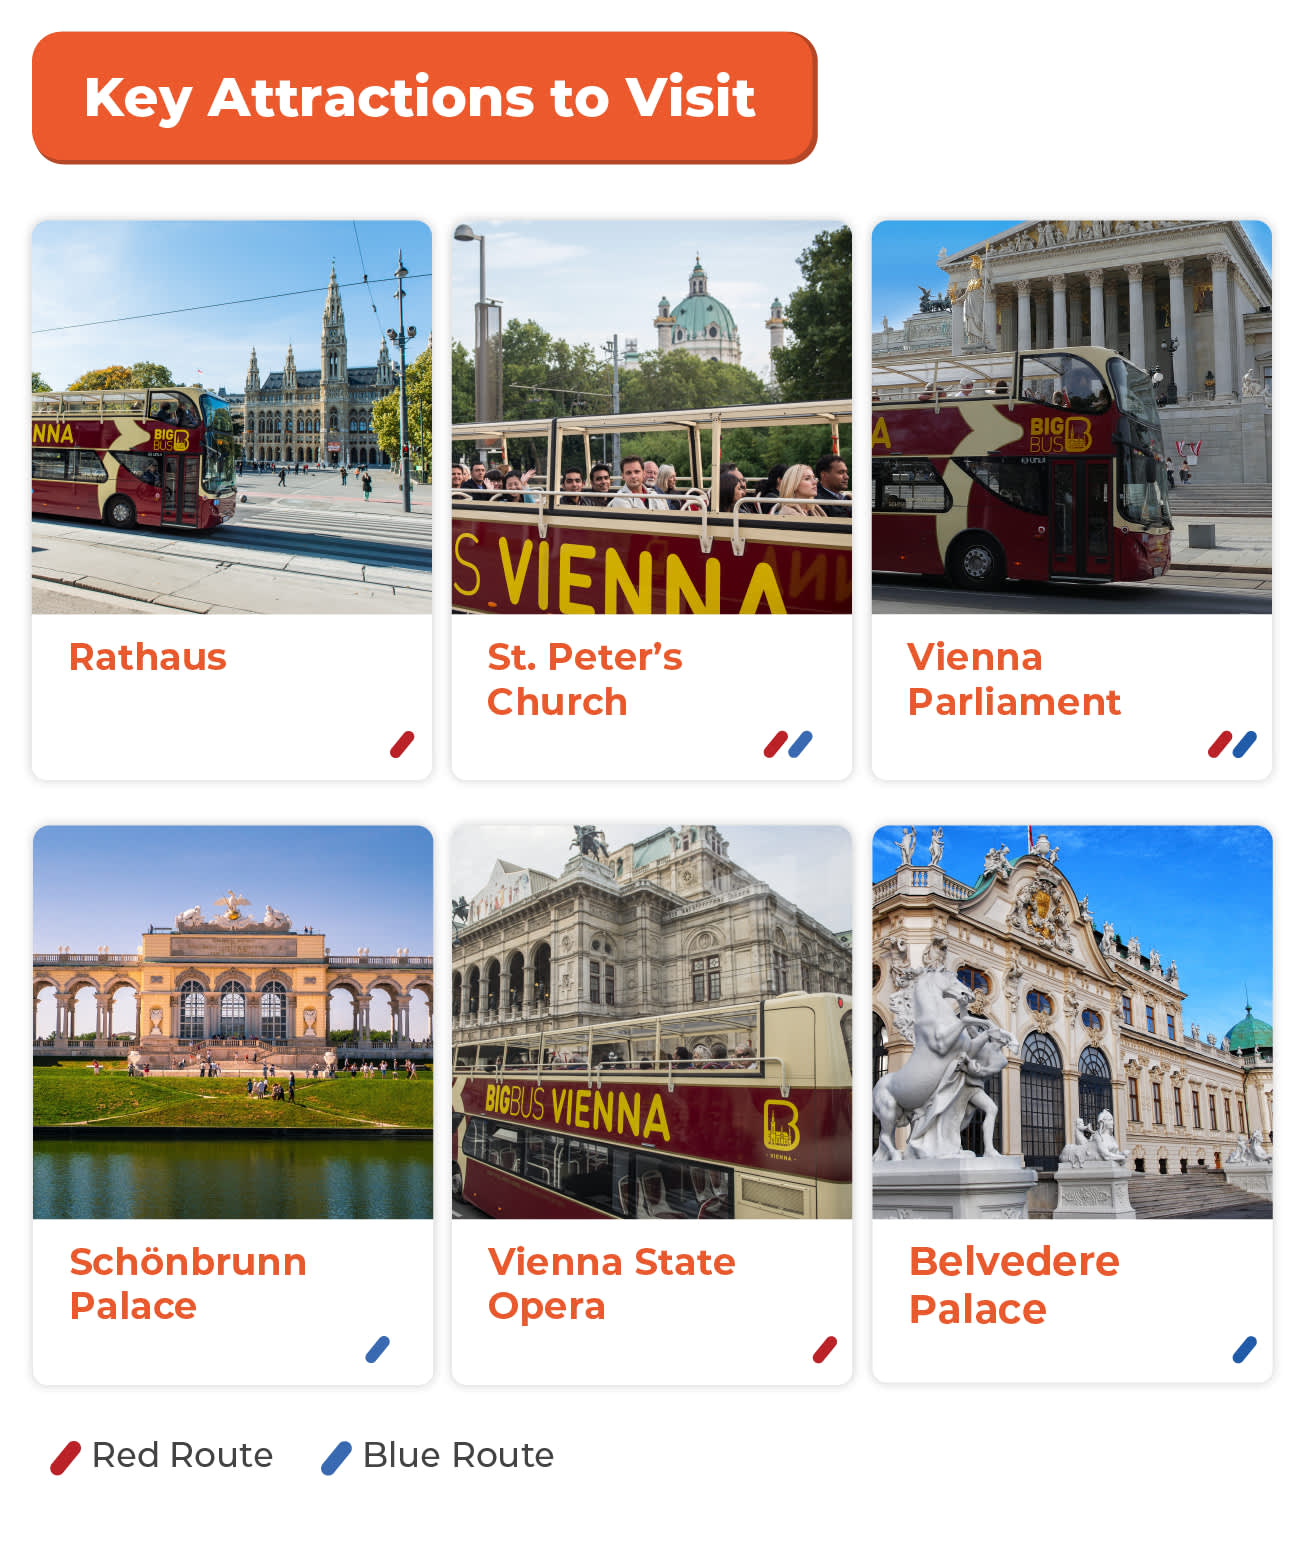 vienna hop on hop off bus key attractions